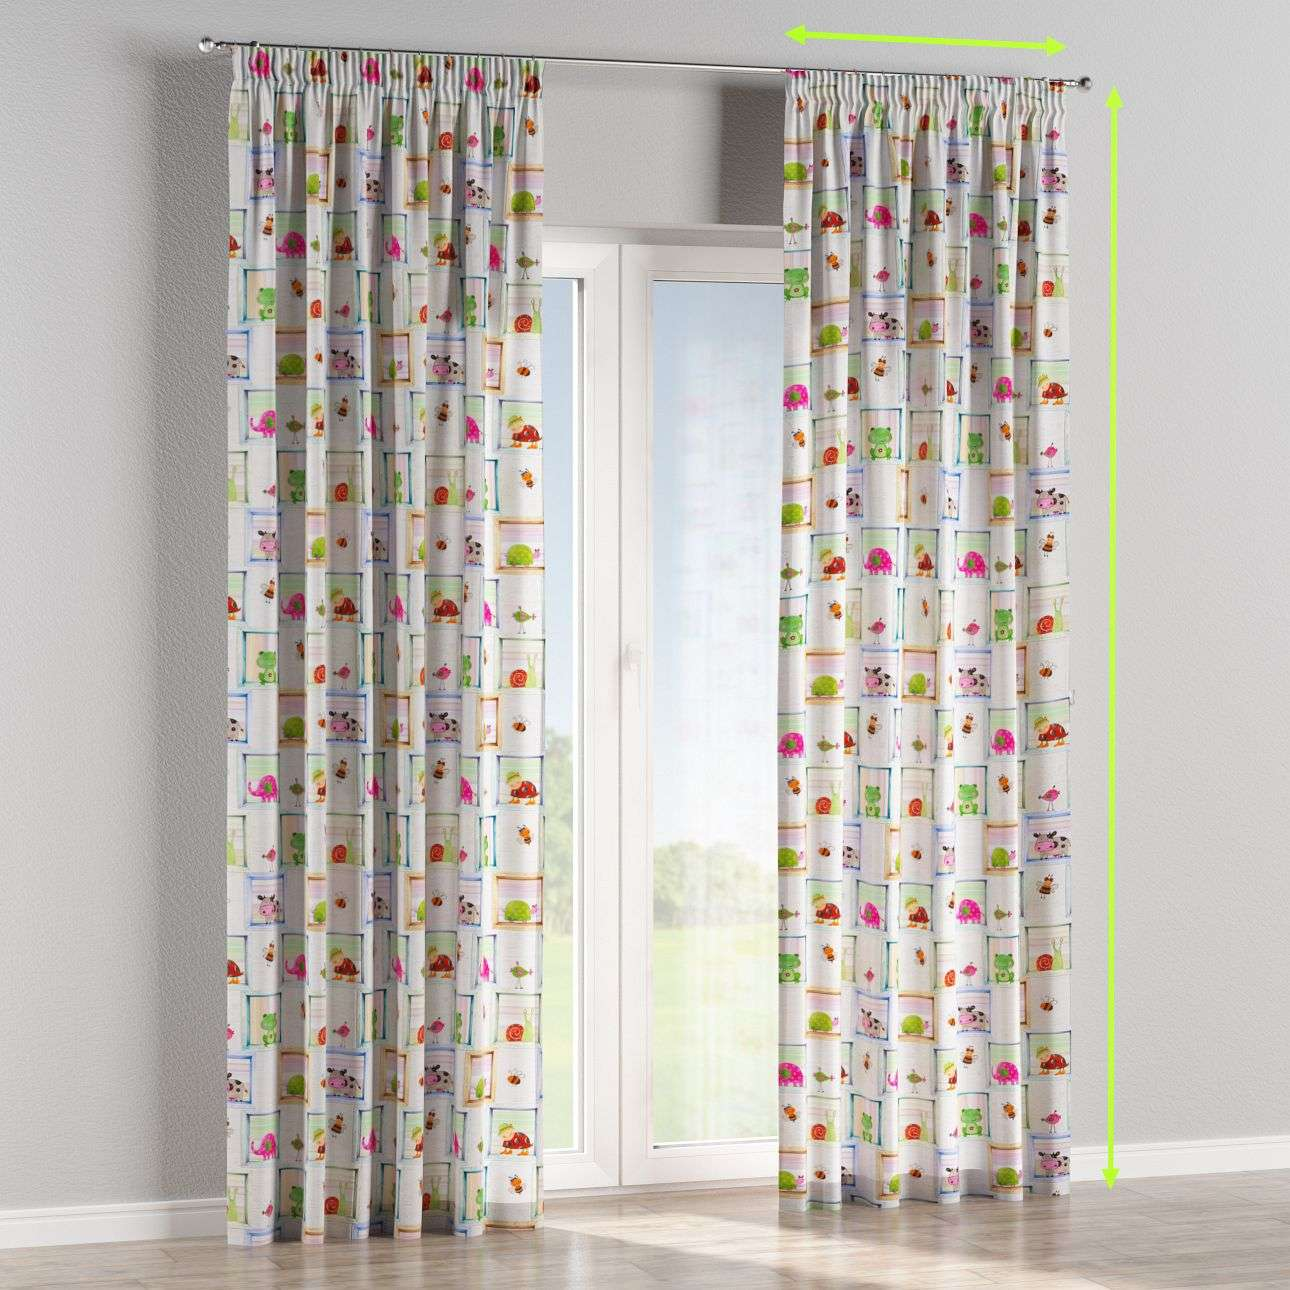 Pencil pleat lined curtains in collection Apanona, fabric: 151-04